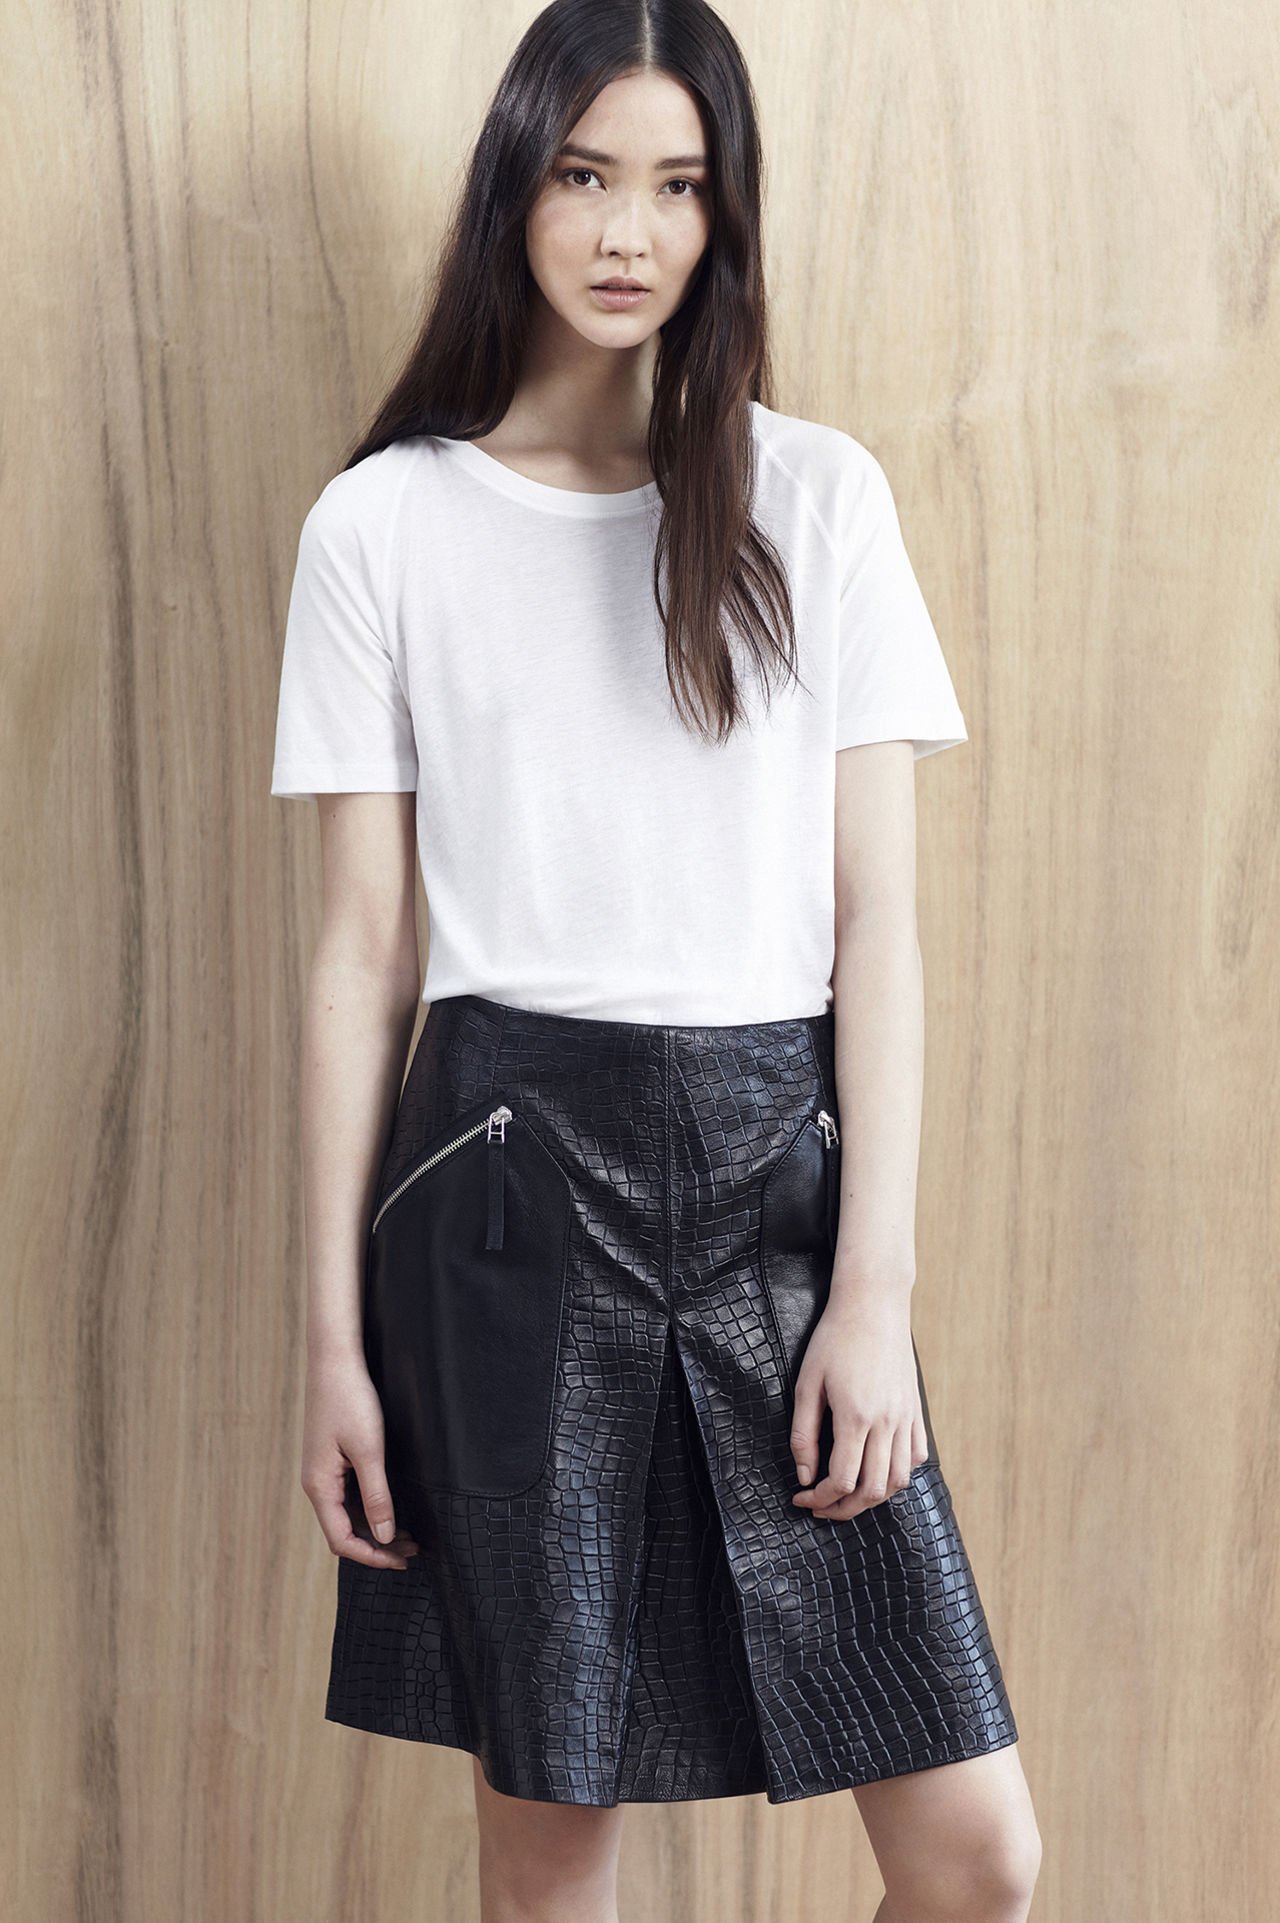 whistles_leather_skirts_01_004fe780500784